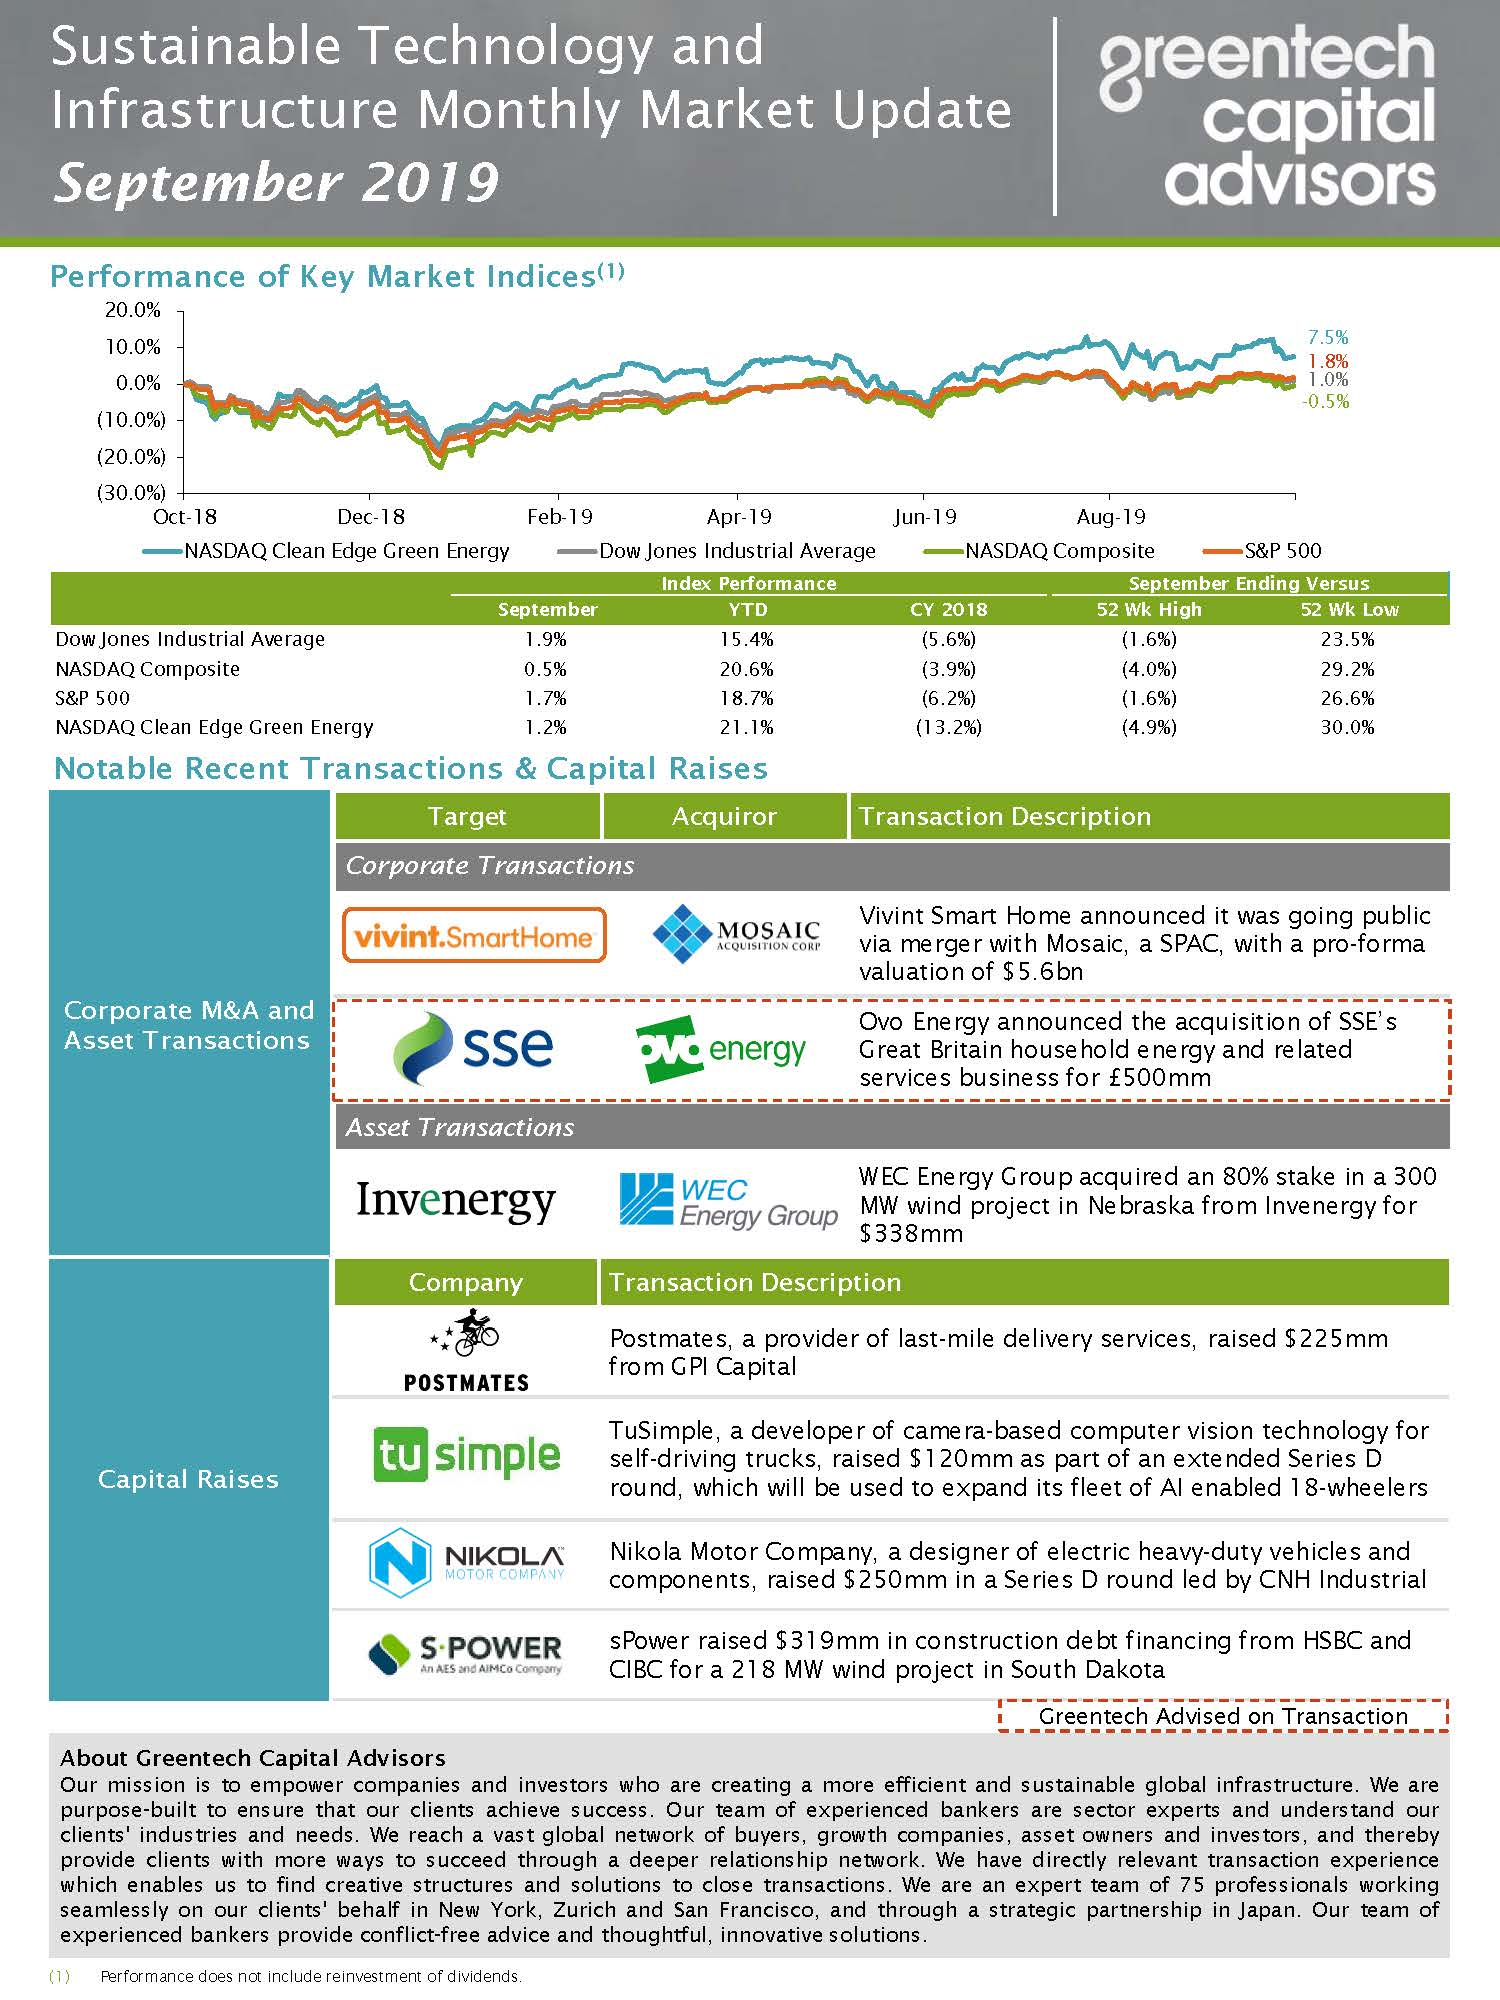 Sustainable Investing Monthly Market Update - September 2019